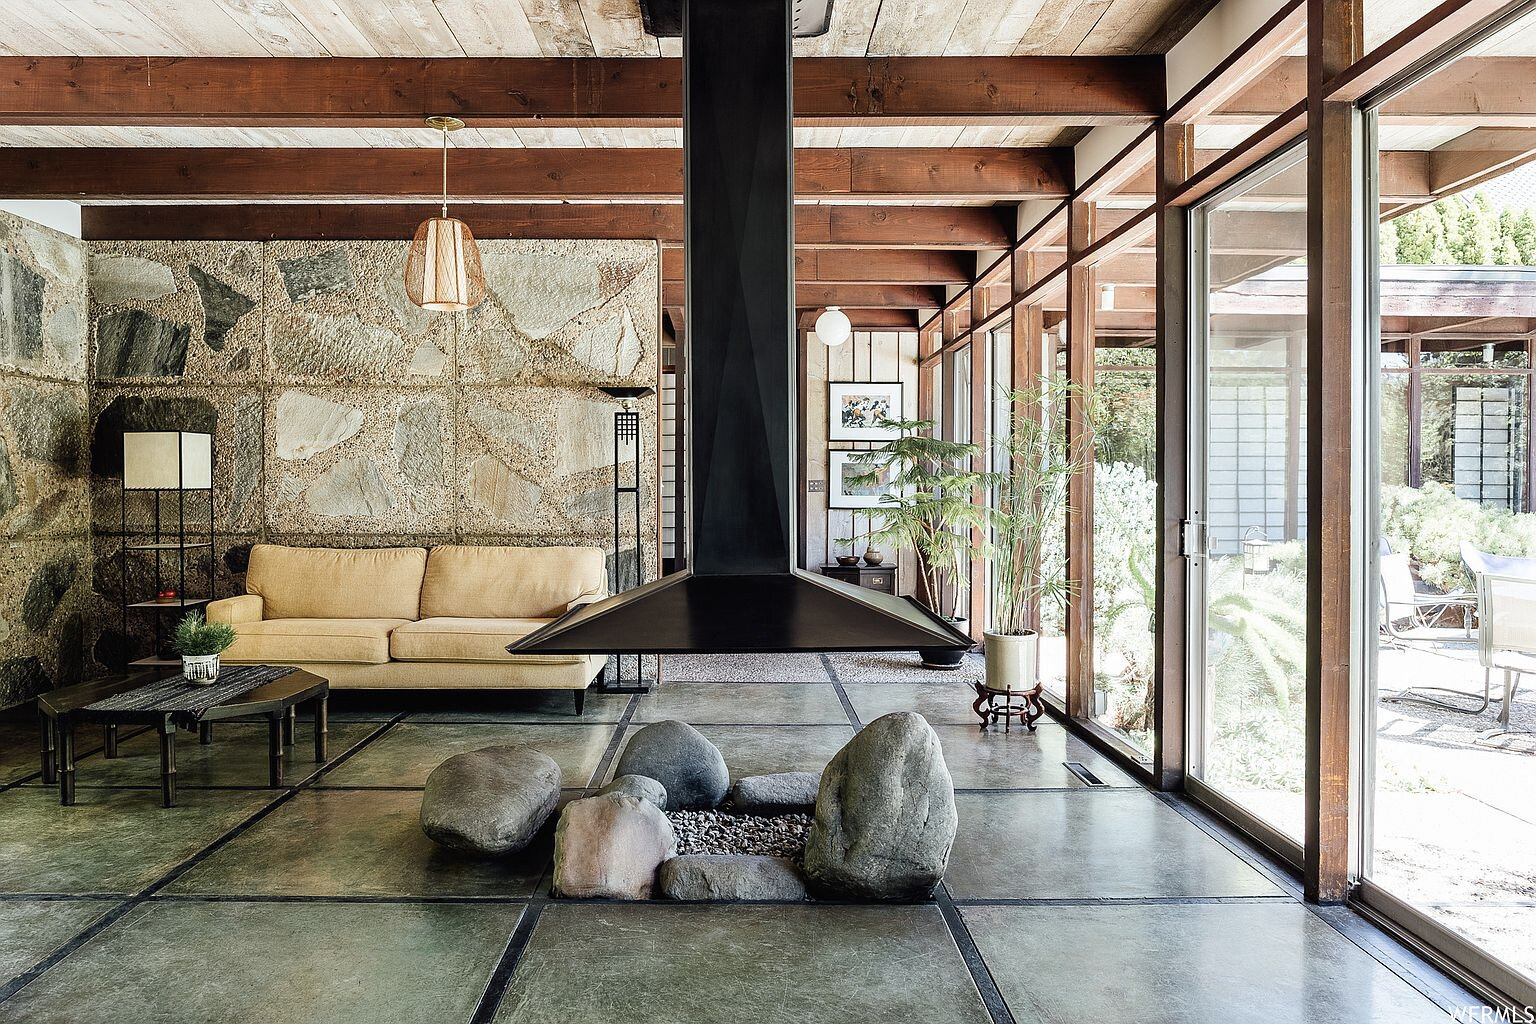 The slabs of concrete and full-height windows continue into the living area, which also features a suspended fireplace hood in the center. In the corner, slabs of concrete embedded with stone carry over from the exterior facade.  Photo 3 of 18 in This Tranquil, Japanese-Inspired Midcentury Home Asks $1.2M